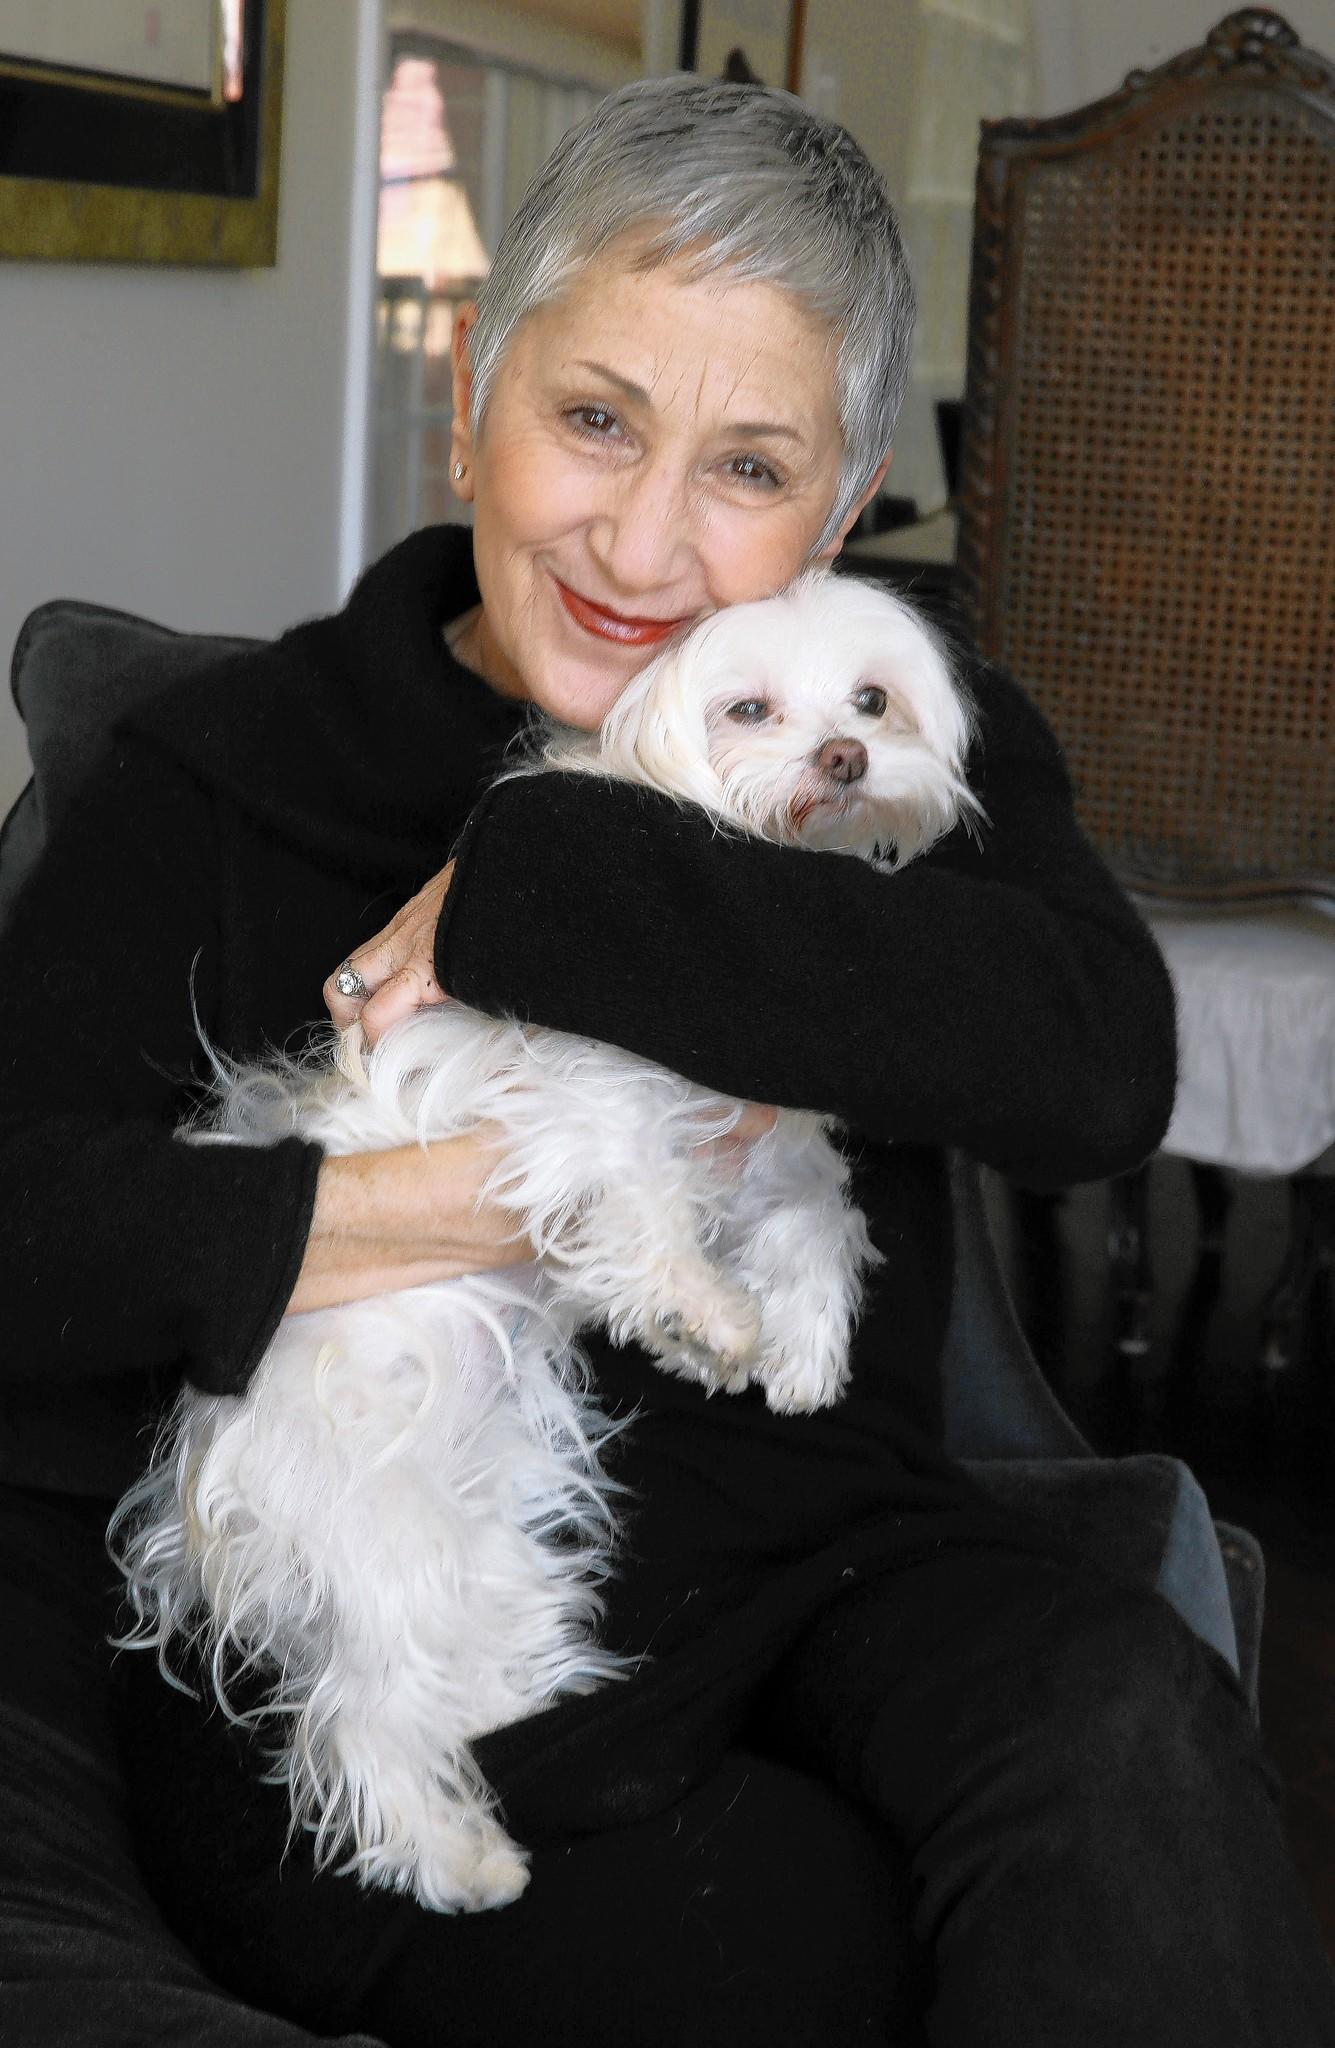 Cari Meyers holds her dog, Millie. Meyers' Puppy Mill Project scored a victory with the Chicago City Council's passage of a bill to ban commercially bred dogs, cats and rabbits.